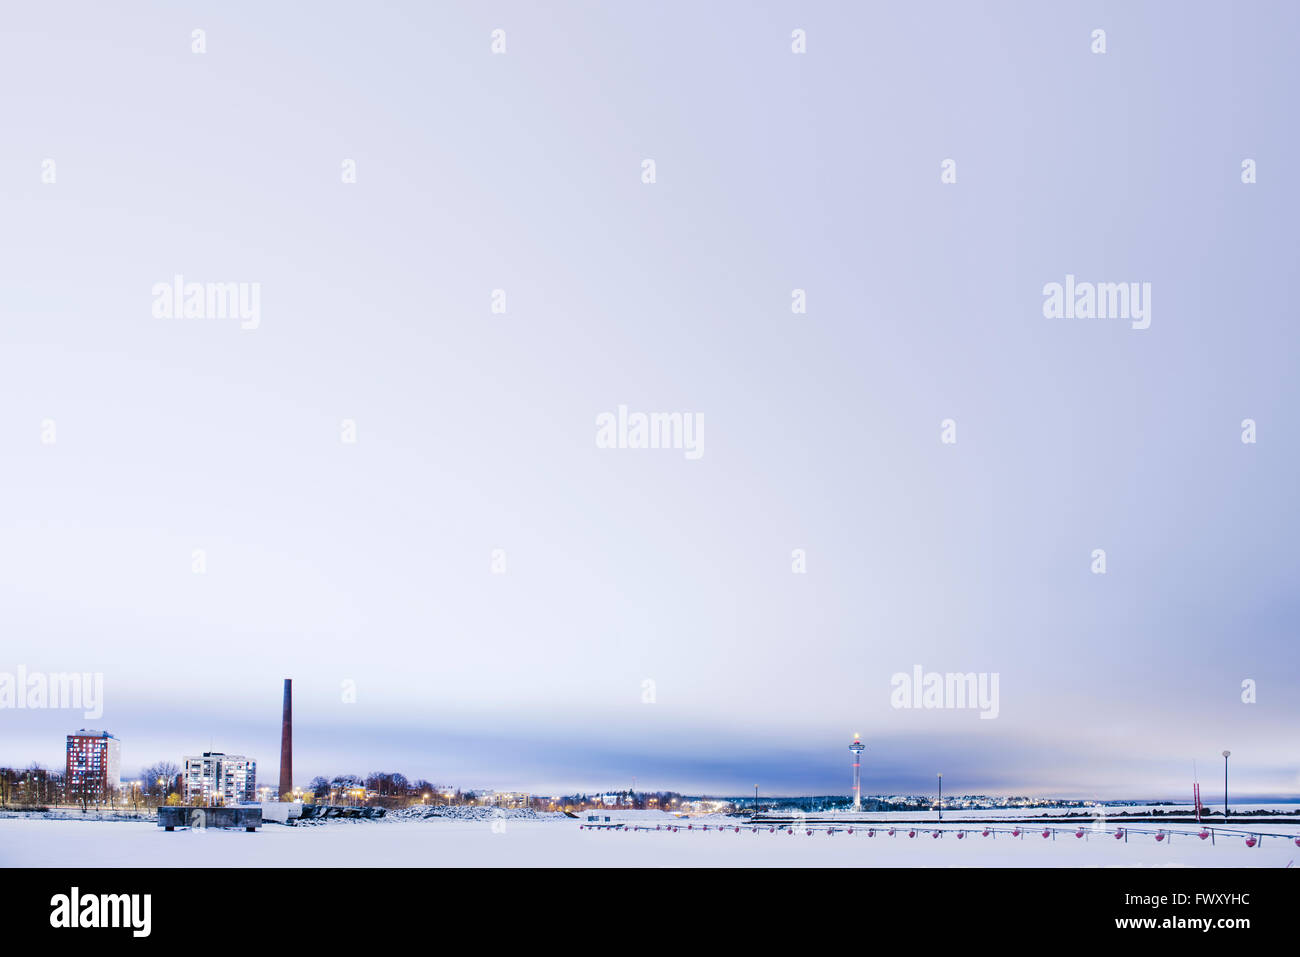 Finland, Pirkanmaa, Tampere, Winter scene with towers Stock Photo